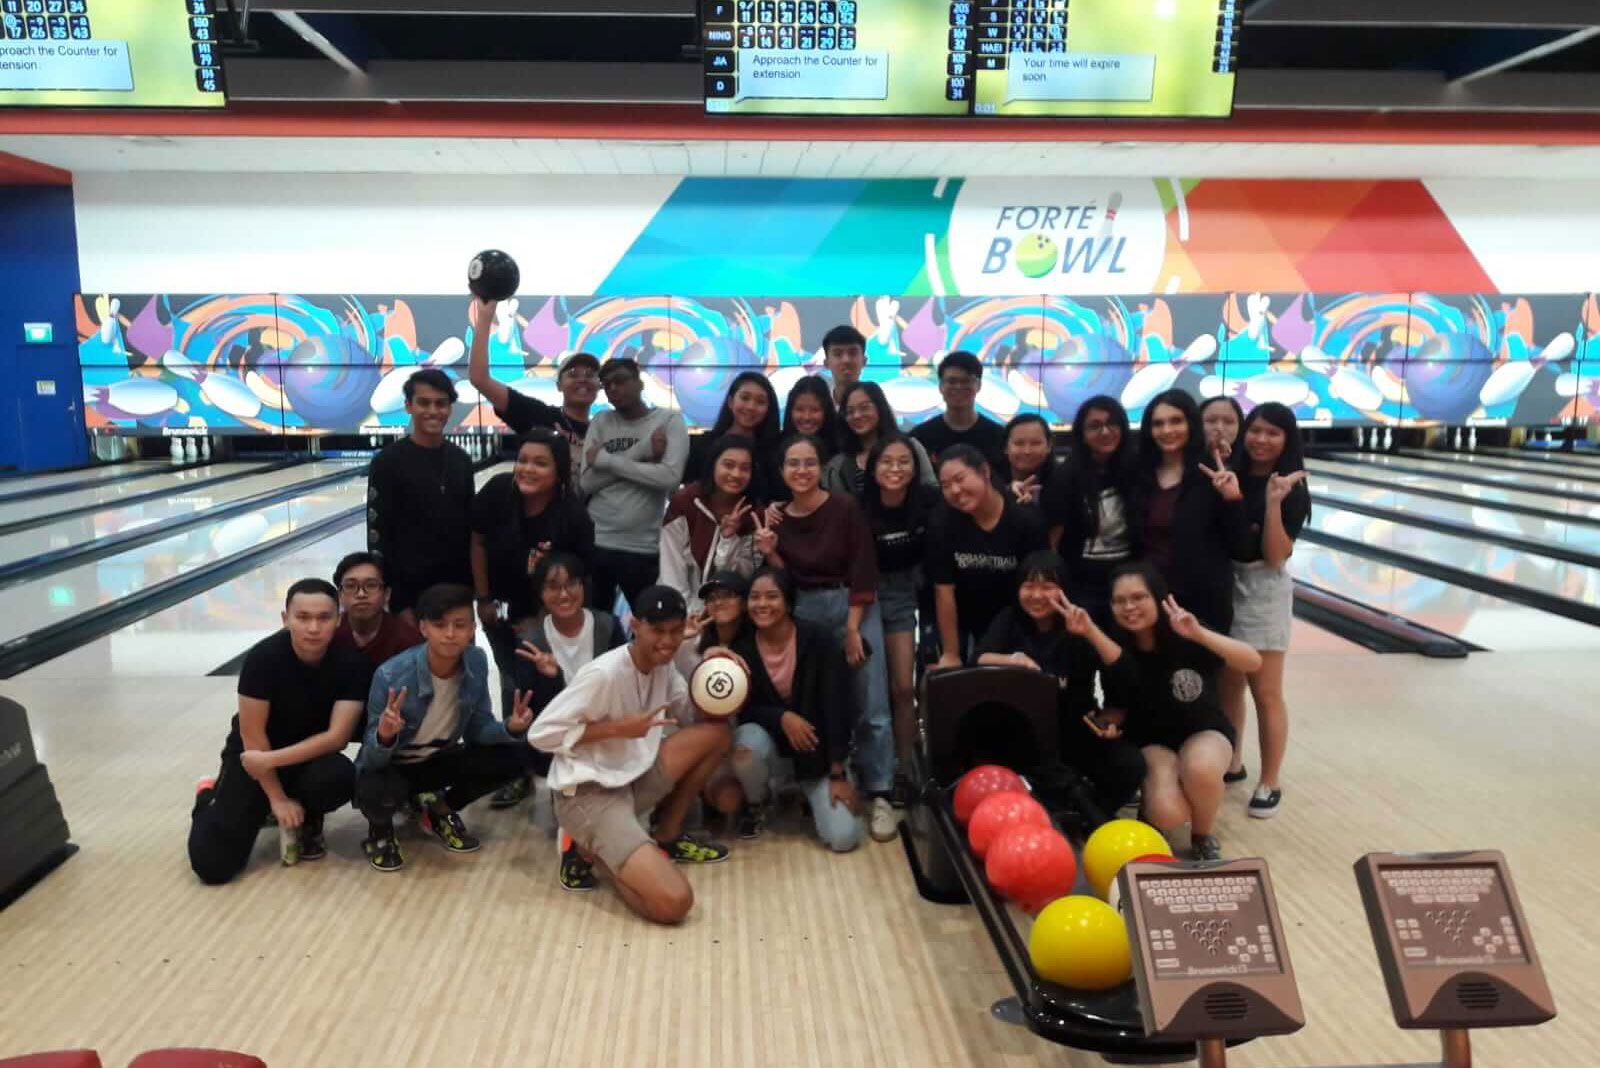 ITE COLLEGE CENTRAL (SCHOOL OF BUSINESS) FUN BOWL